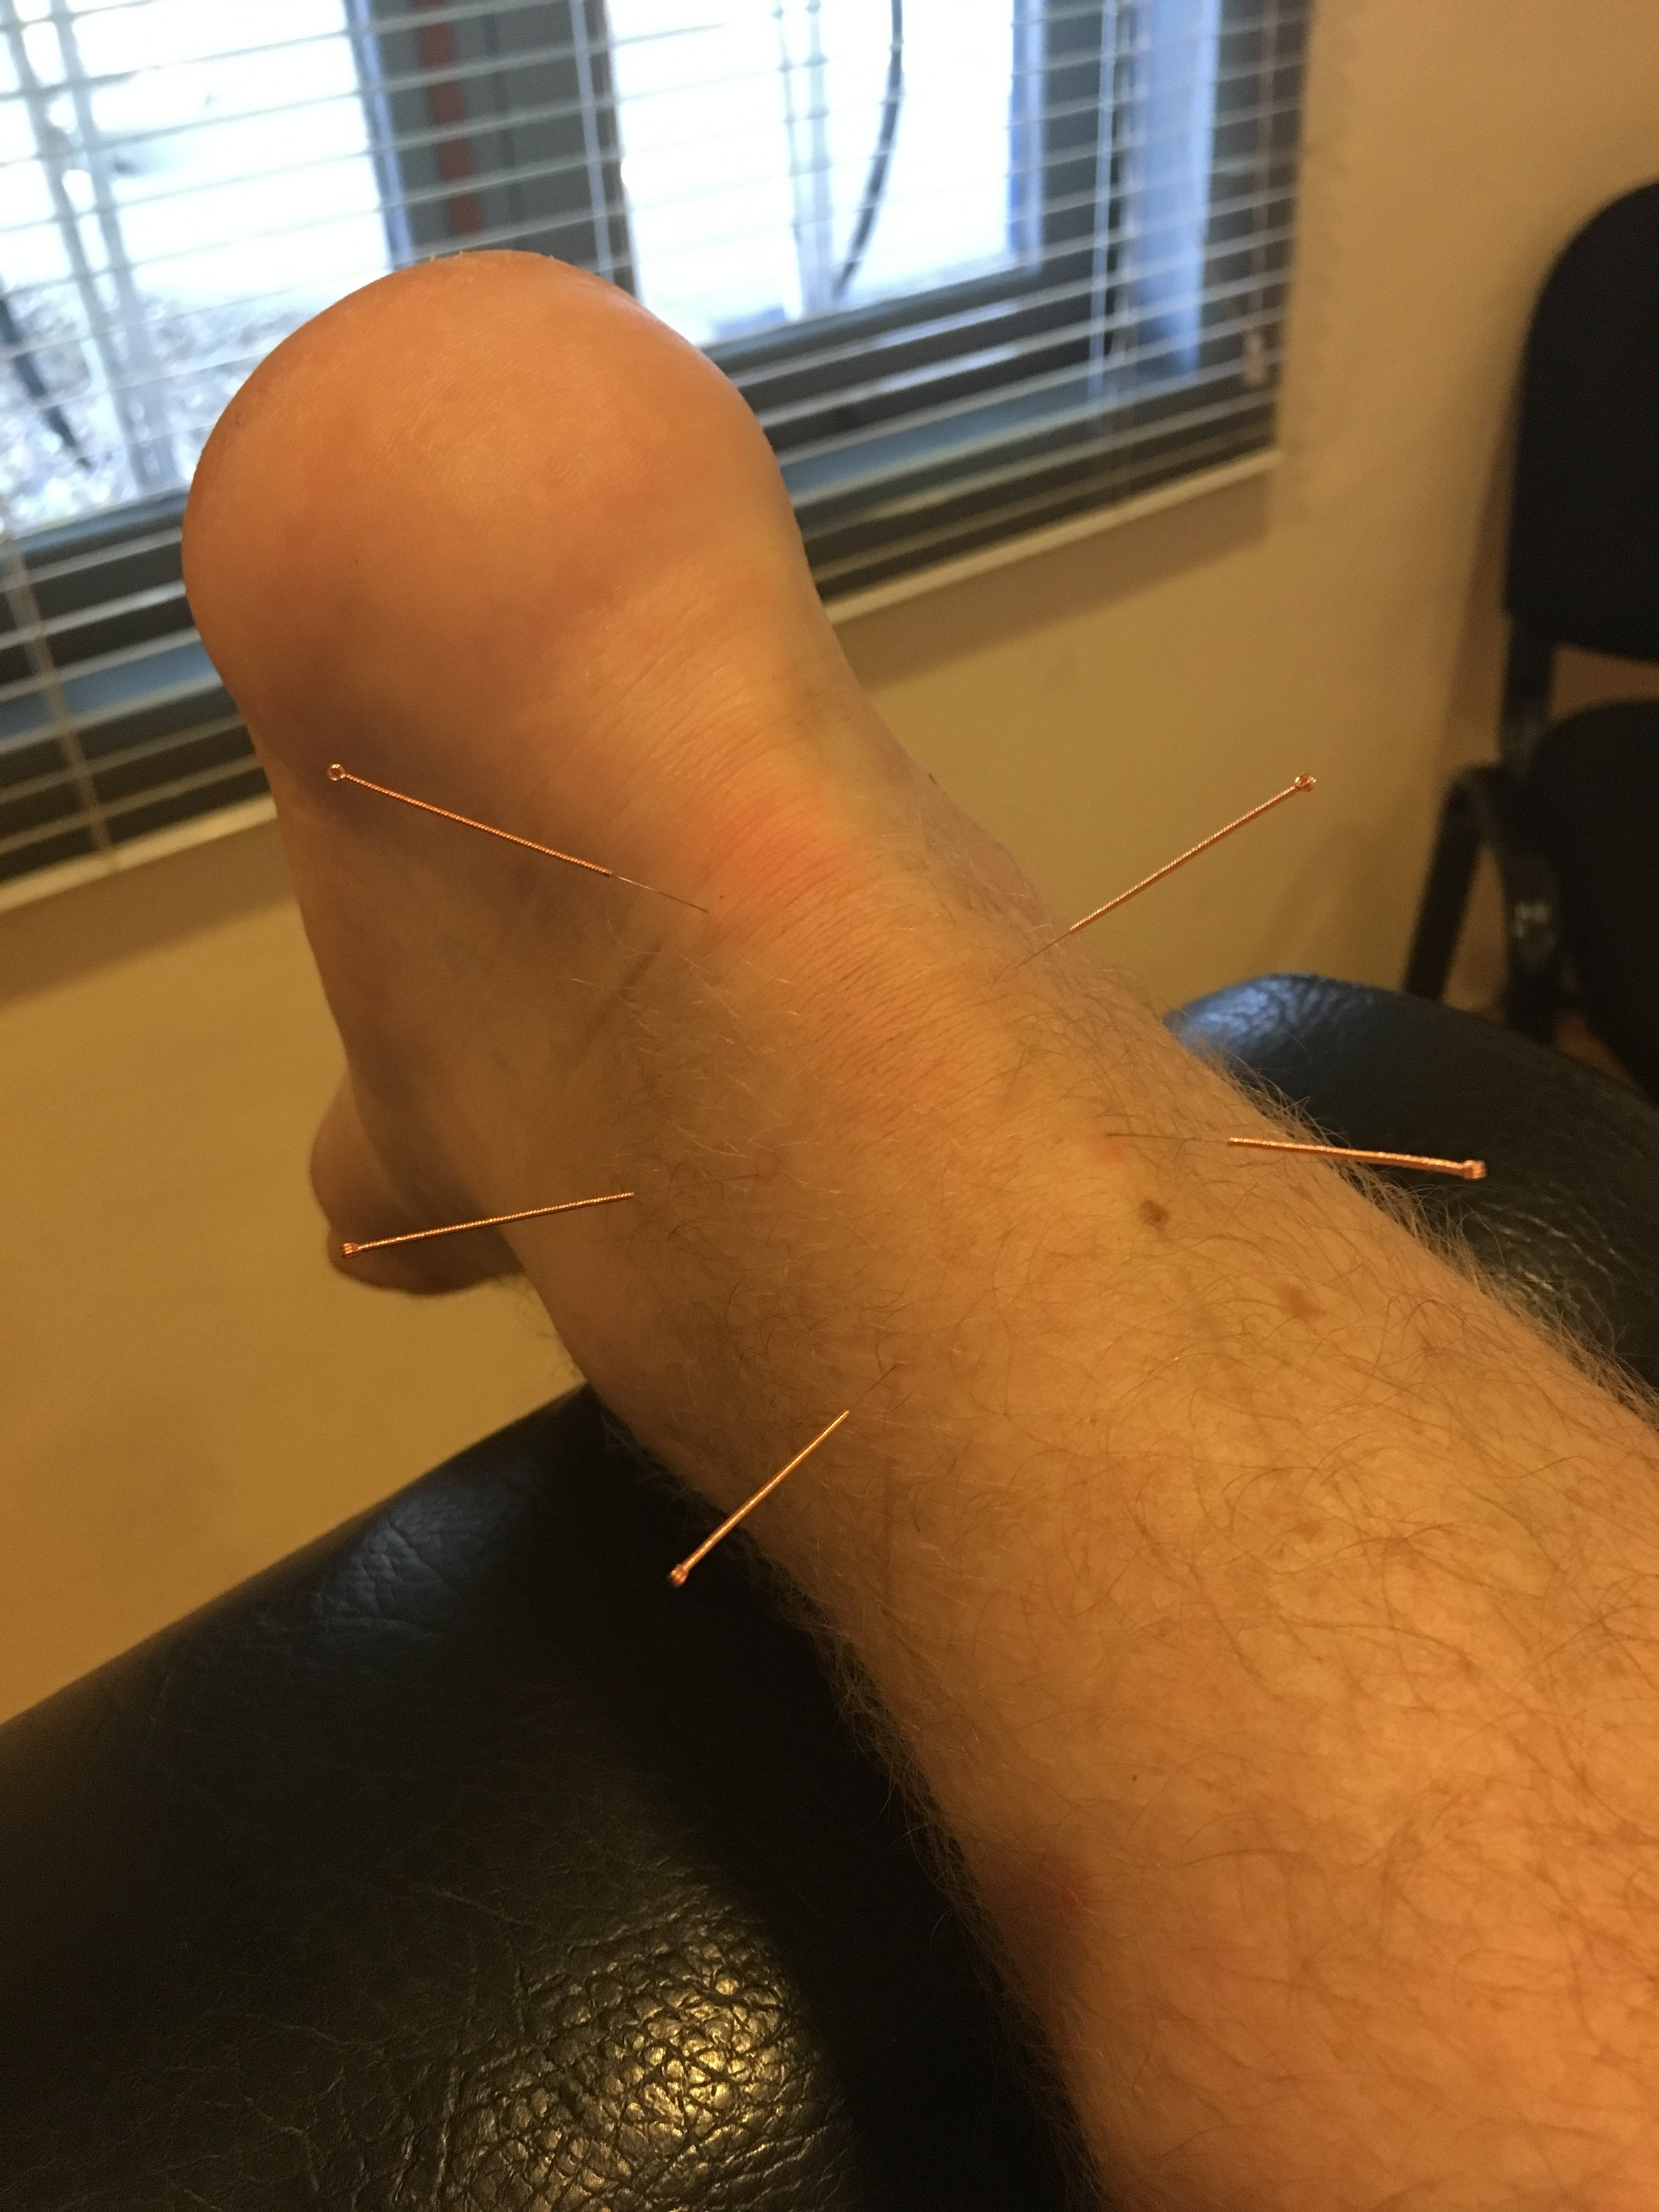 Dry needle acupuncture at the French clinic, Vientiane